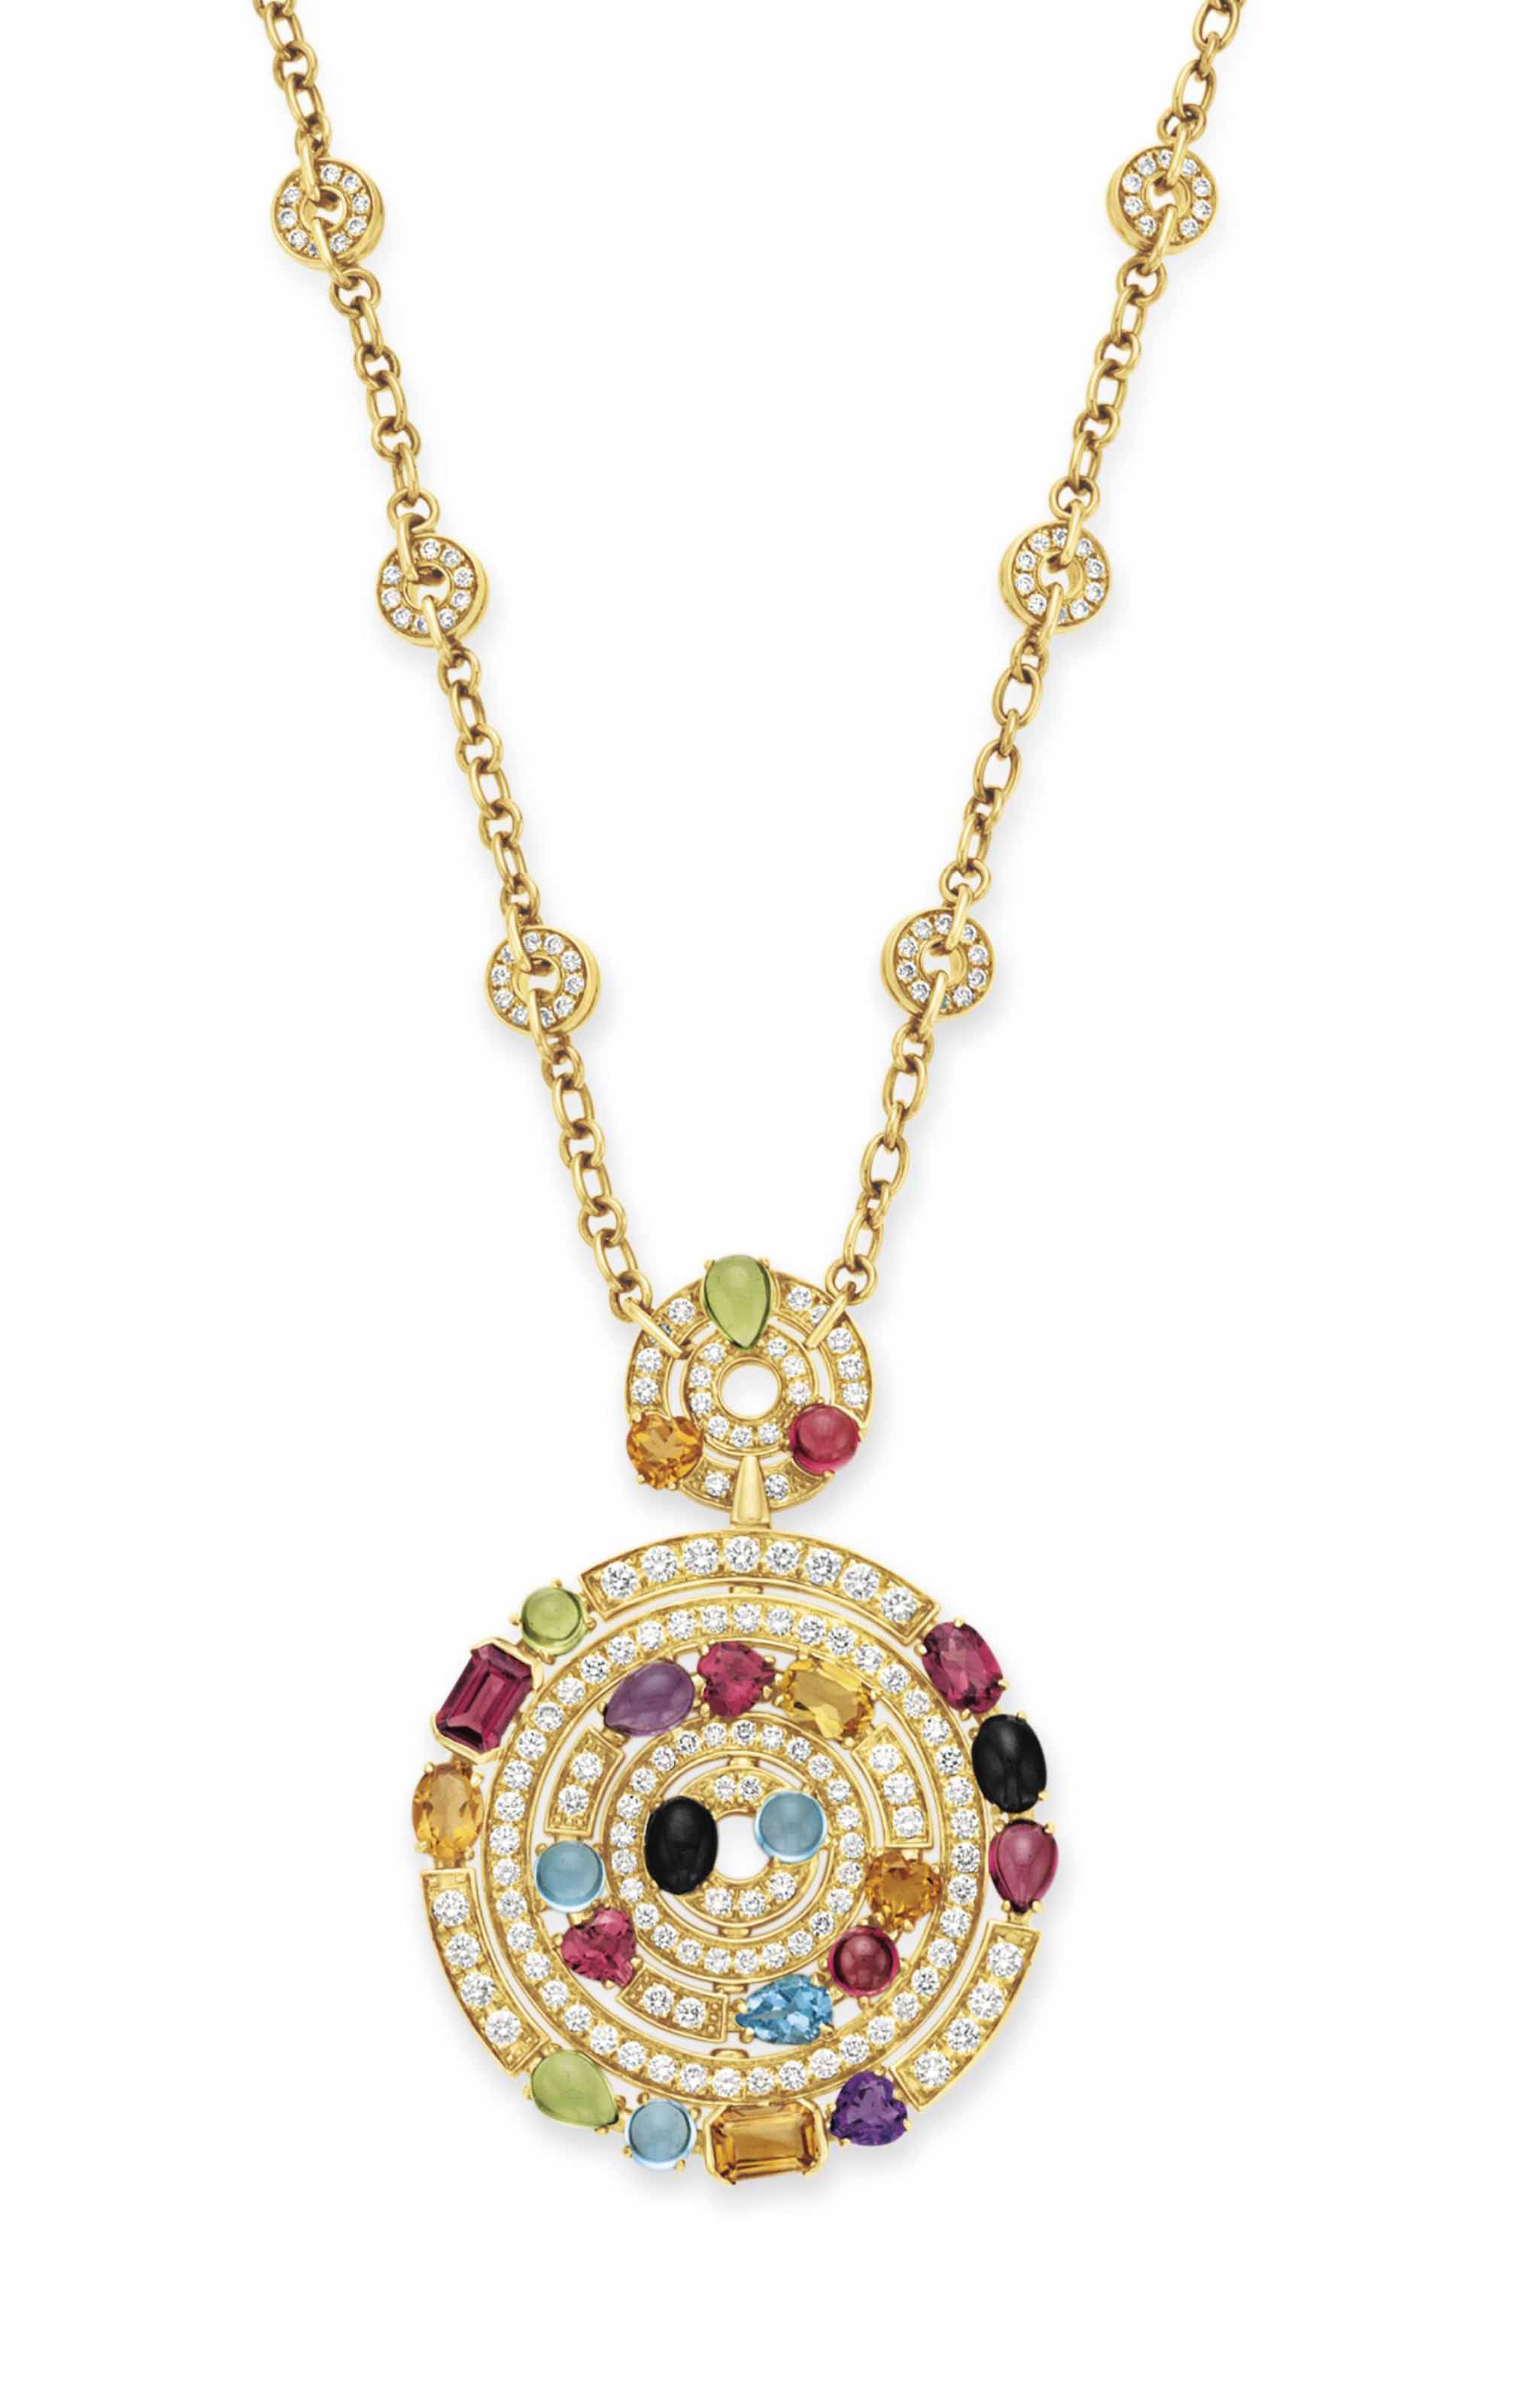 A DIAMOND AND MULTI-GEM PENDANT NECKLACE, BY BVLGARI